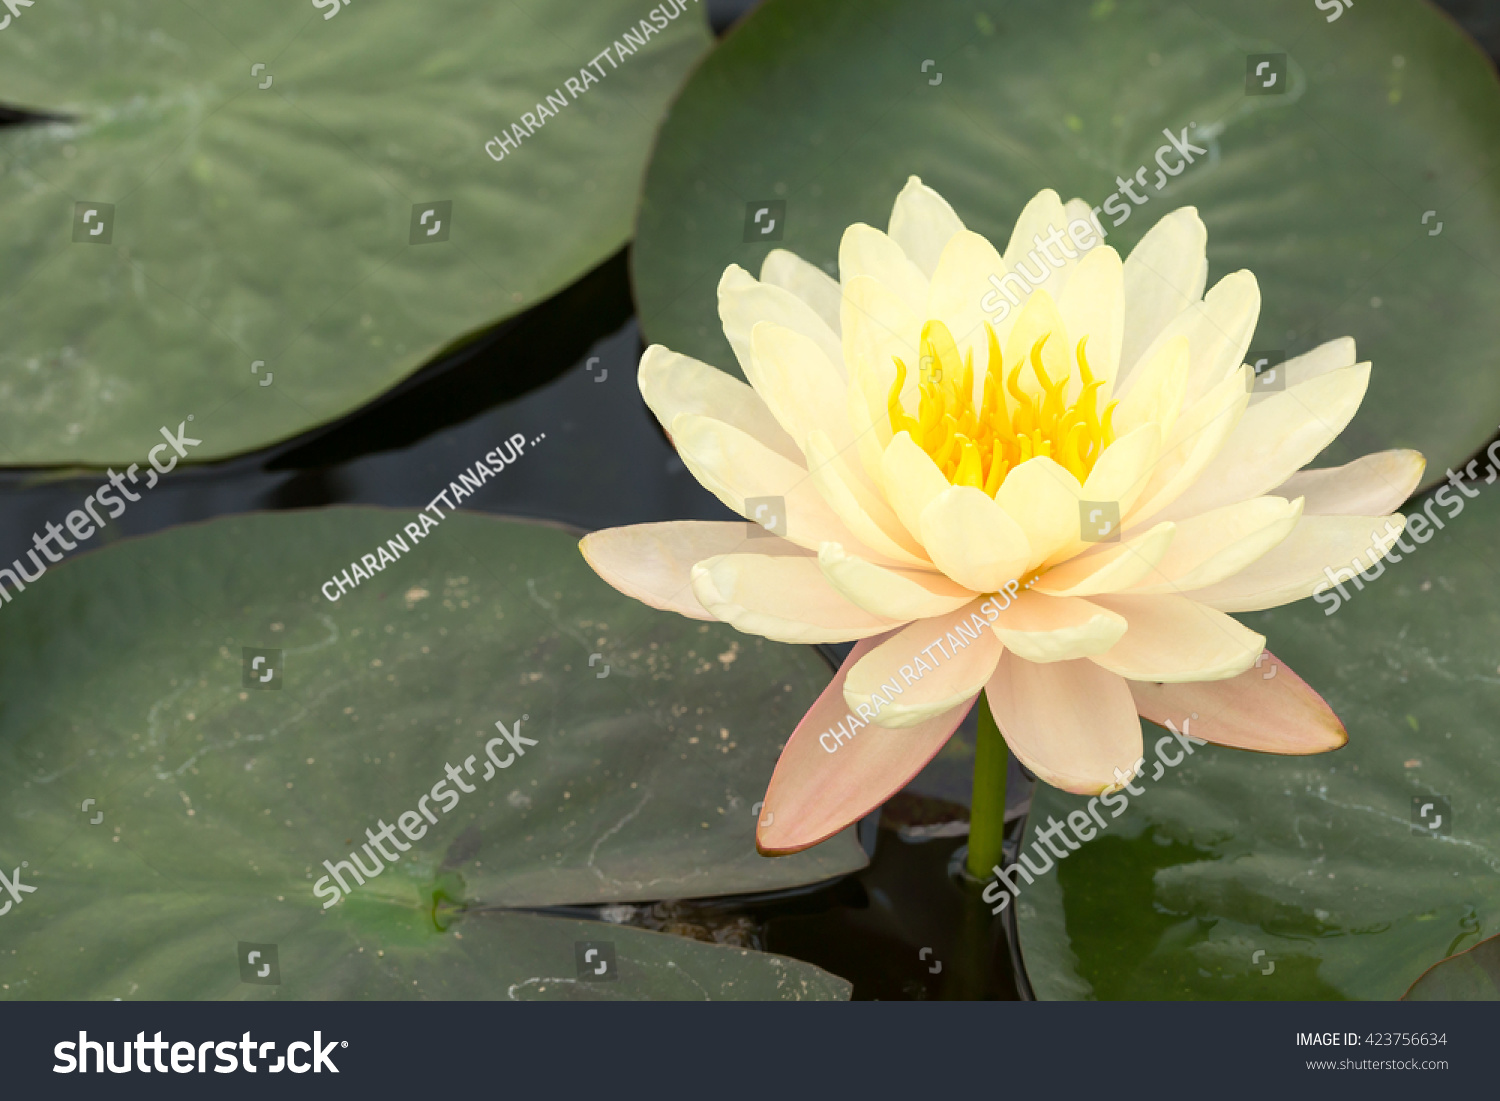 Lotus flowers yellow this flower buddha stock photo edit now lotus flowers in yellow this is the flower of the buddha should bring rustic beauty izmirmasajfo